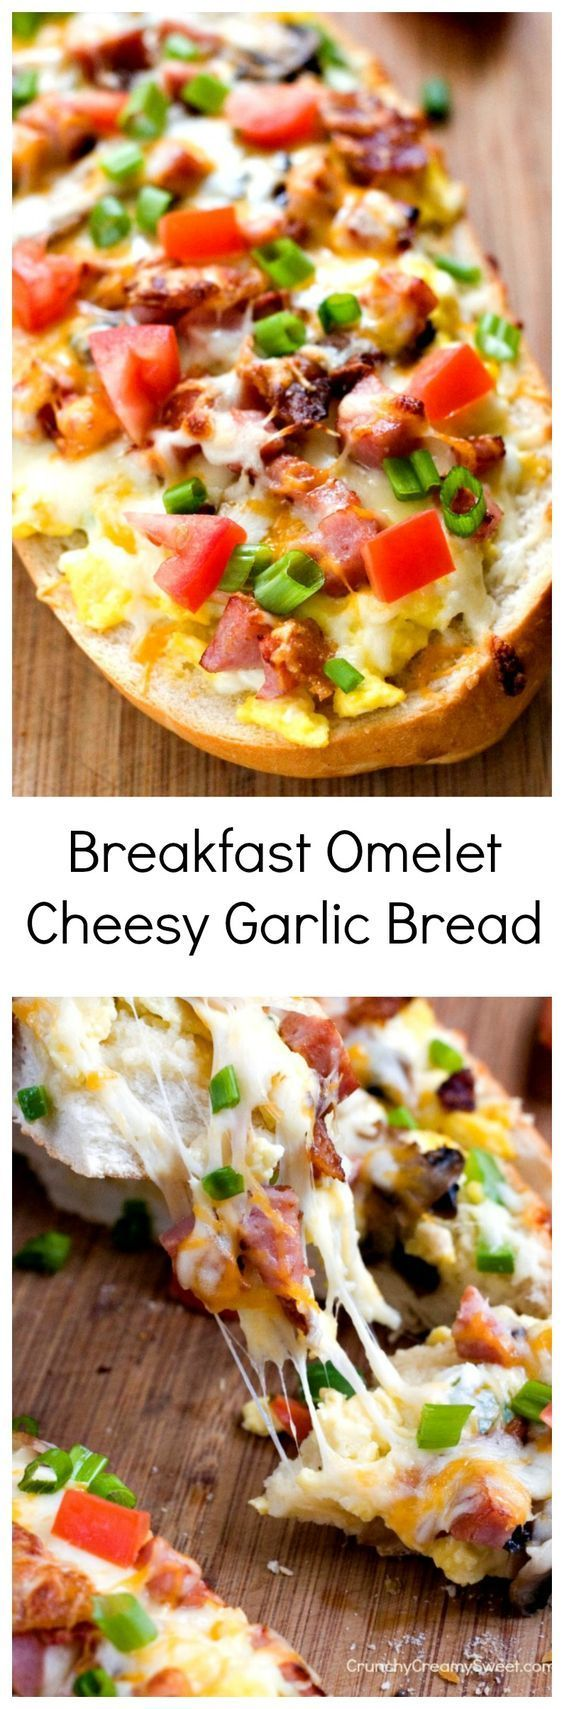 Breakfast Omelet Cheesy Garlic Bread easy cheesy garlic bread topped with scrambled eggs, bacon, ham, peppers, mushrooms and plenty of cheese! Breakfast just became fun!